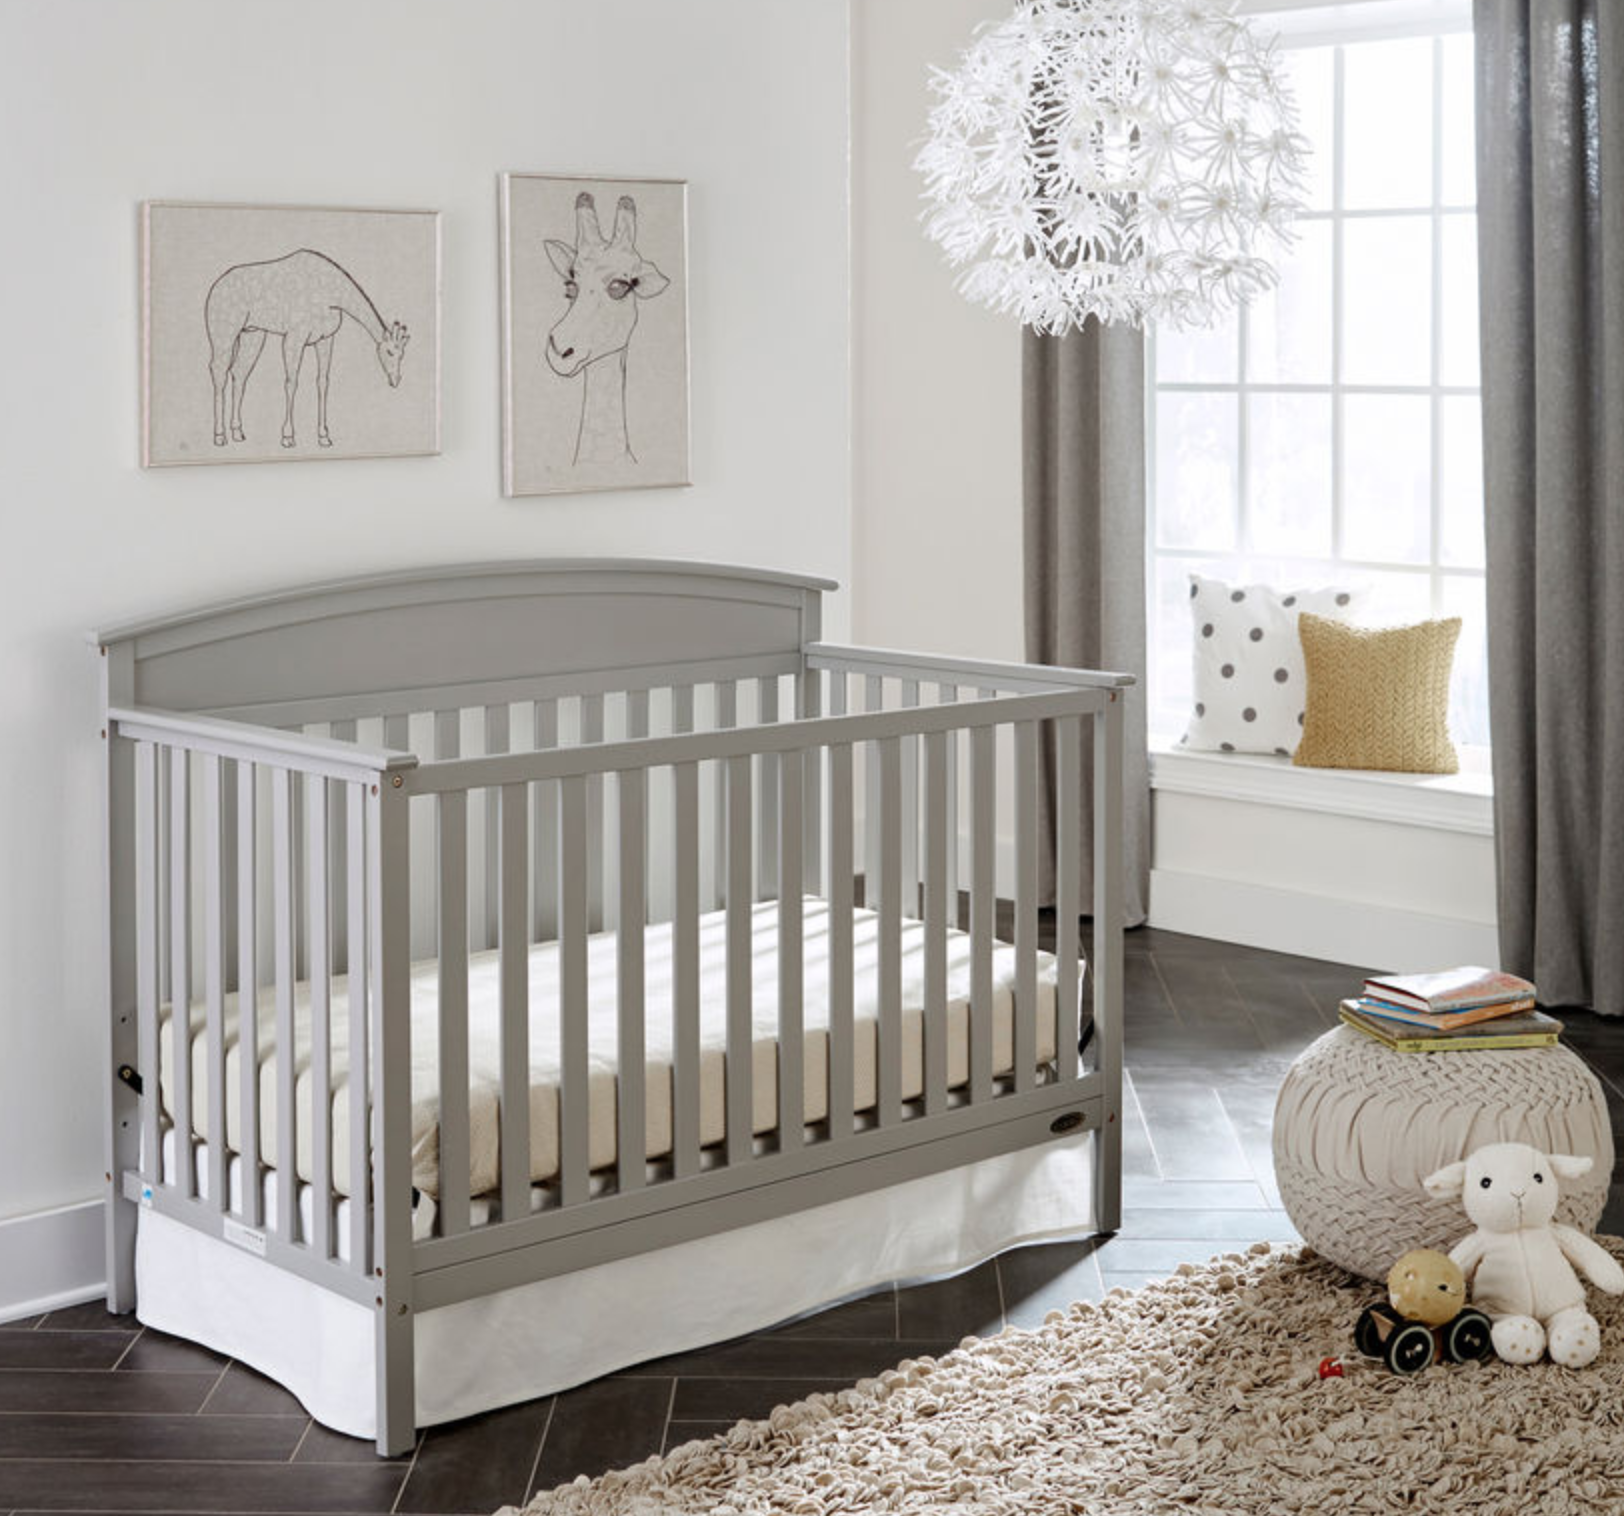 Benton 5-in-1 Fixed-Side Convertible Crib